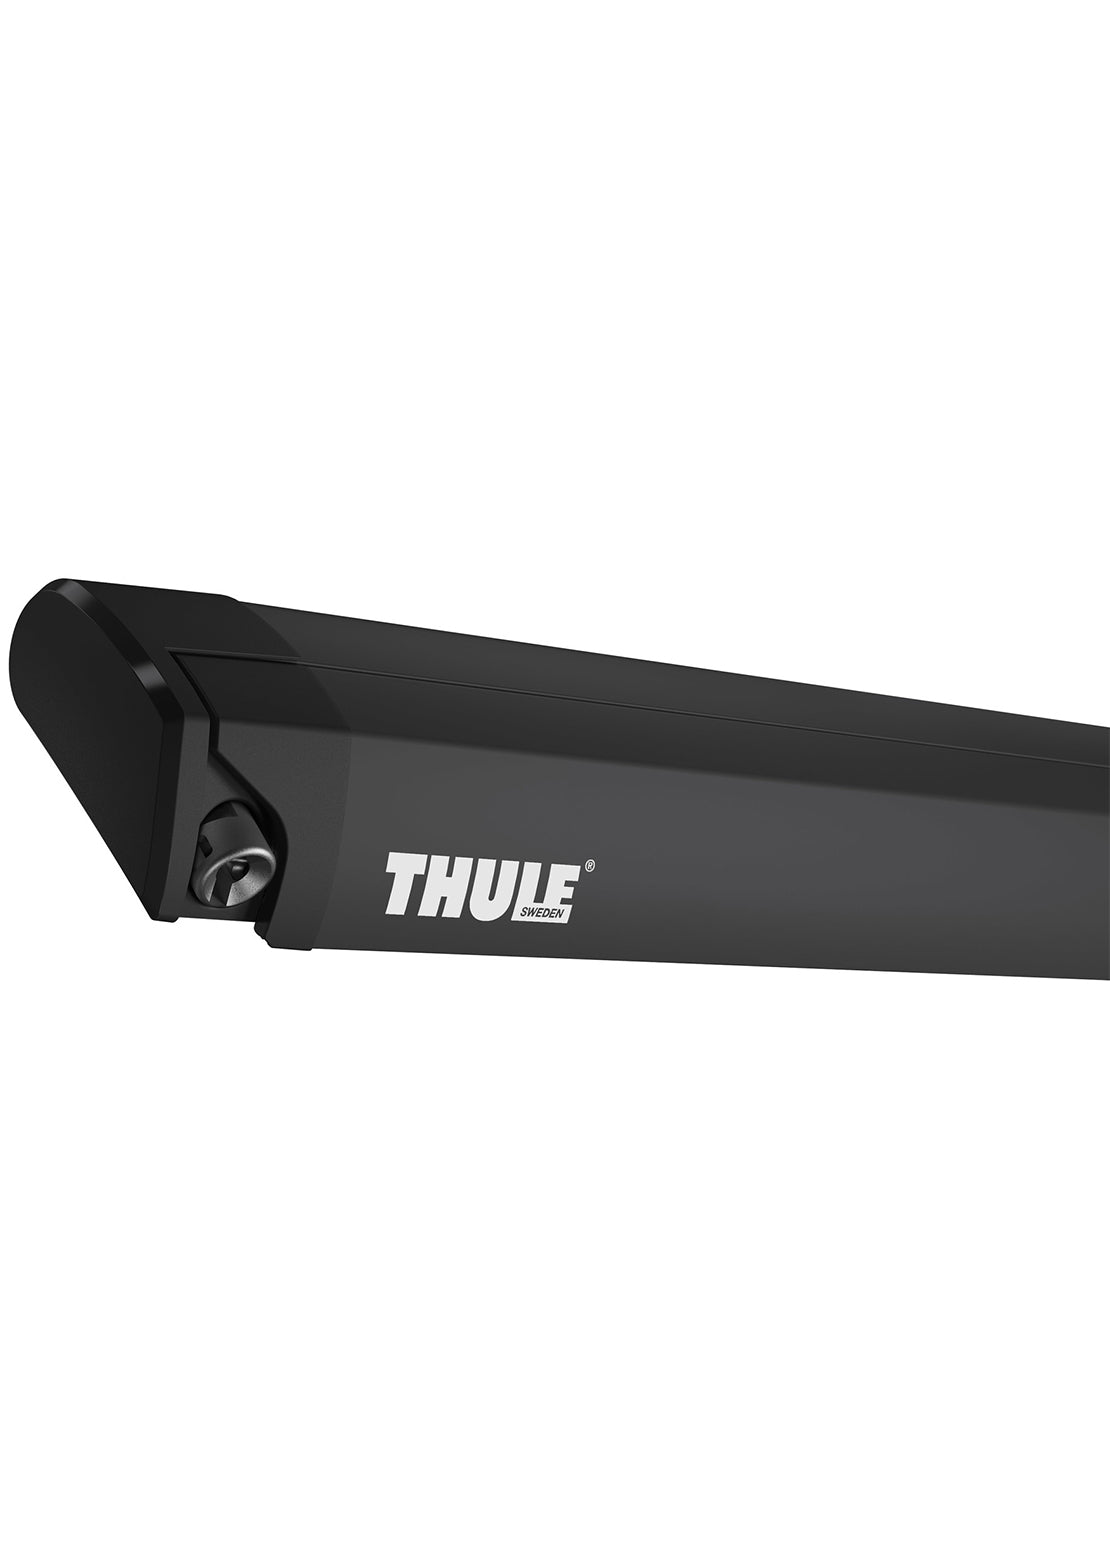 Thule HideAway 3.75m Roof Mounted Awning Anthracite